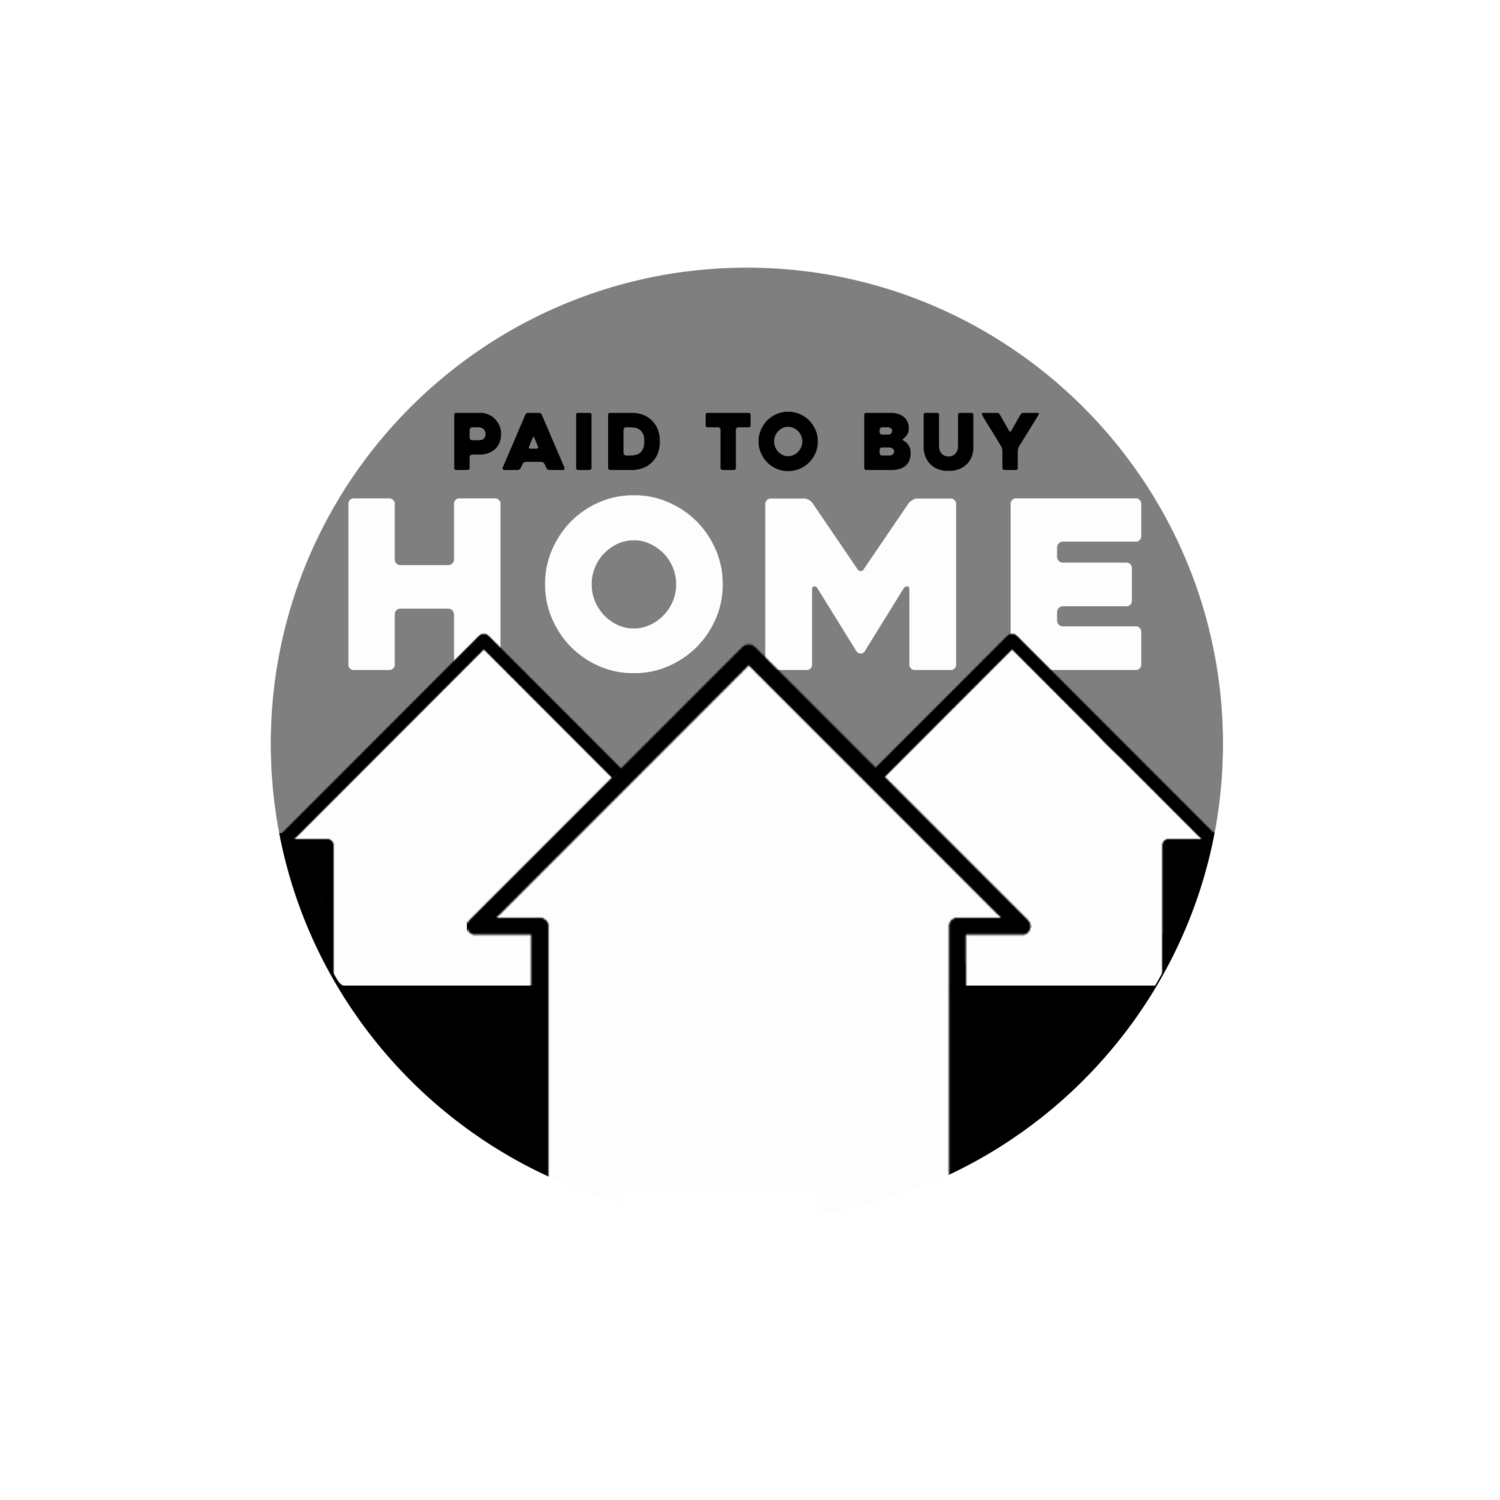 Paid to Buy Home